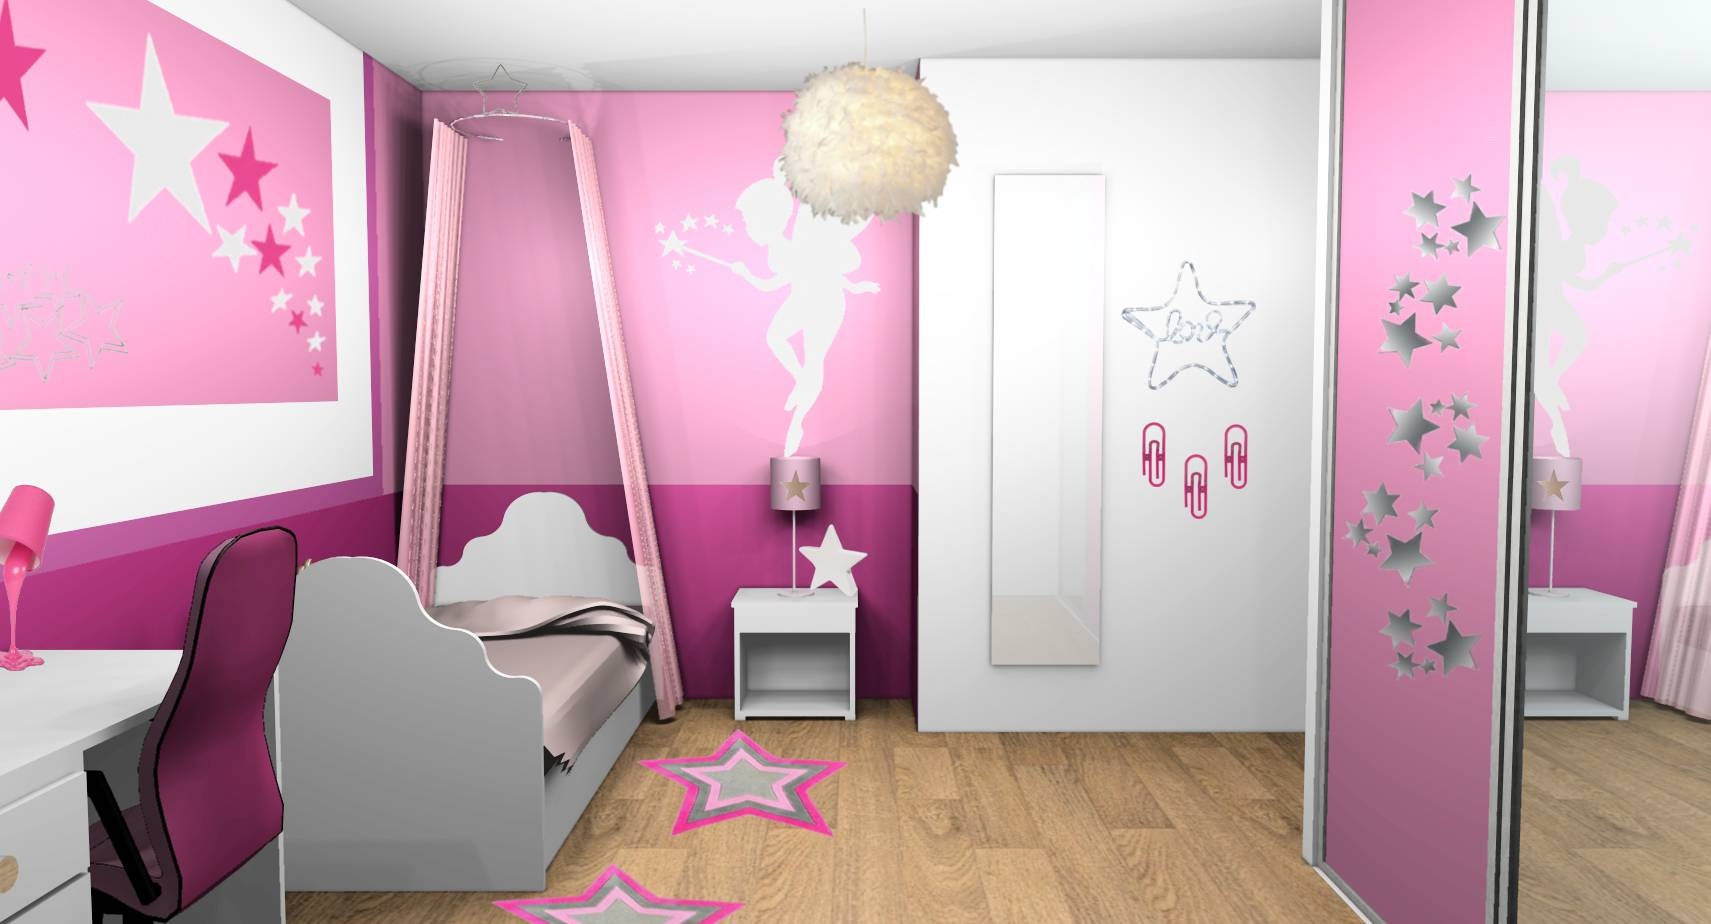 fabulous dcoration duintrieur duune chambre de petite fille with peinture chambres. Black Bedroom Furniture Sets. Home Design Ideas